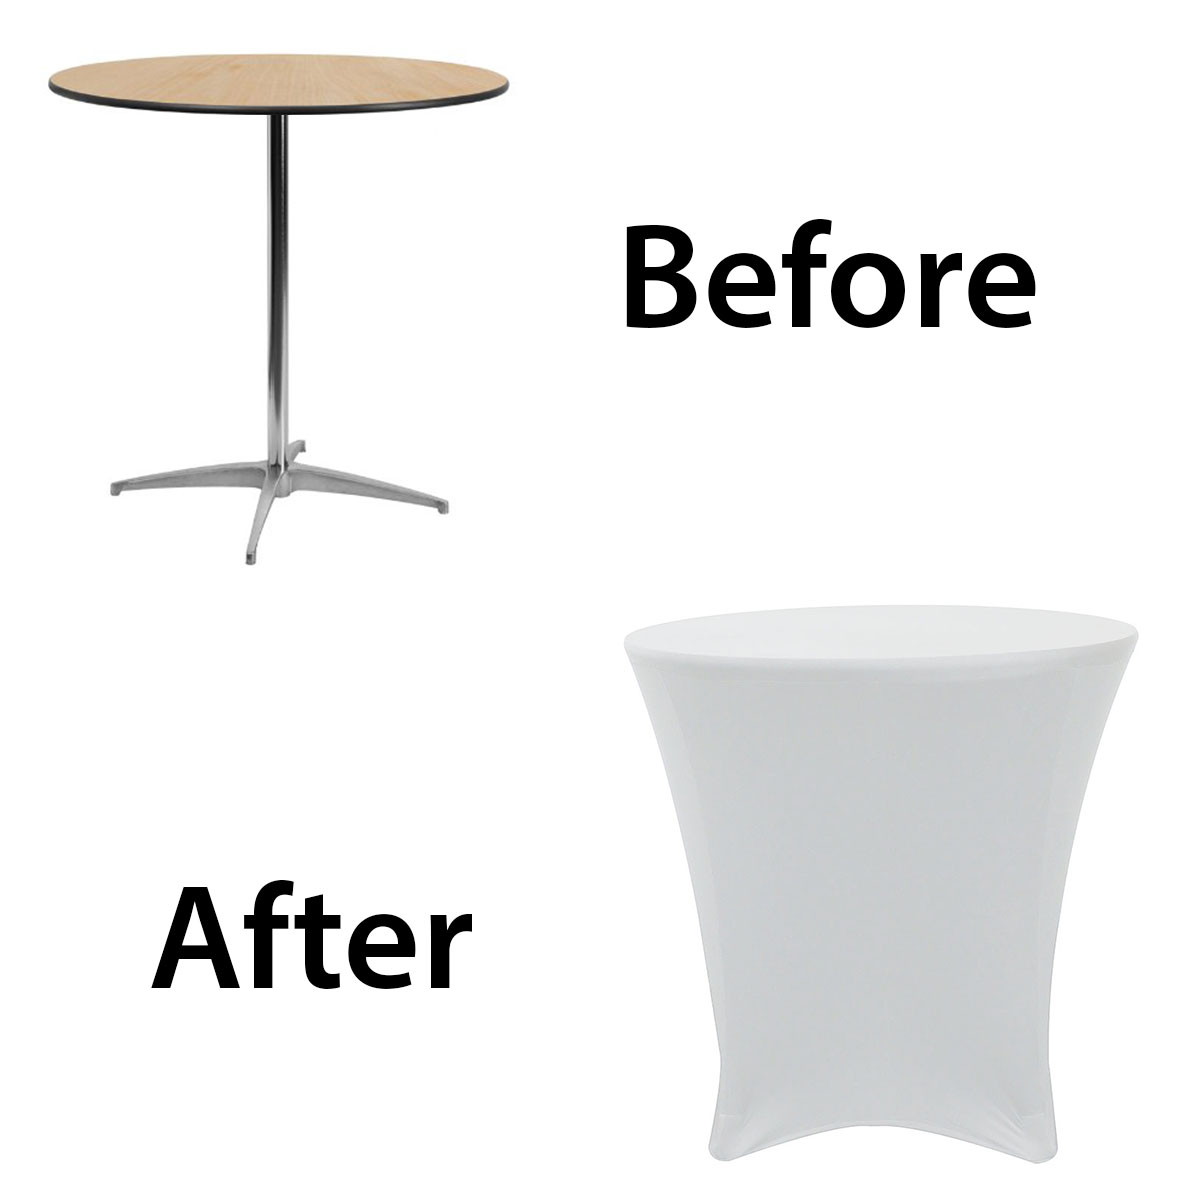 30-30-inch-lowboy-cocktail-spandex-table-covers-white-before-after.jpg